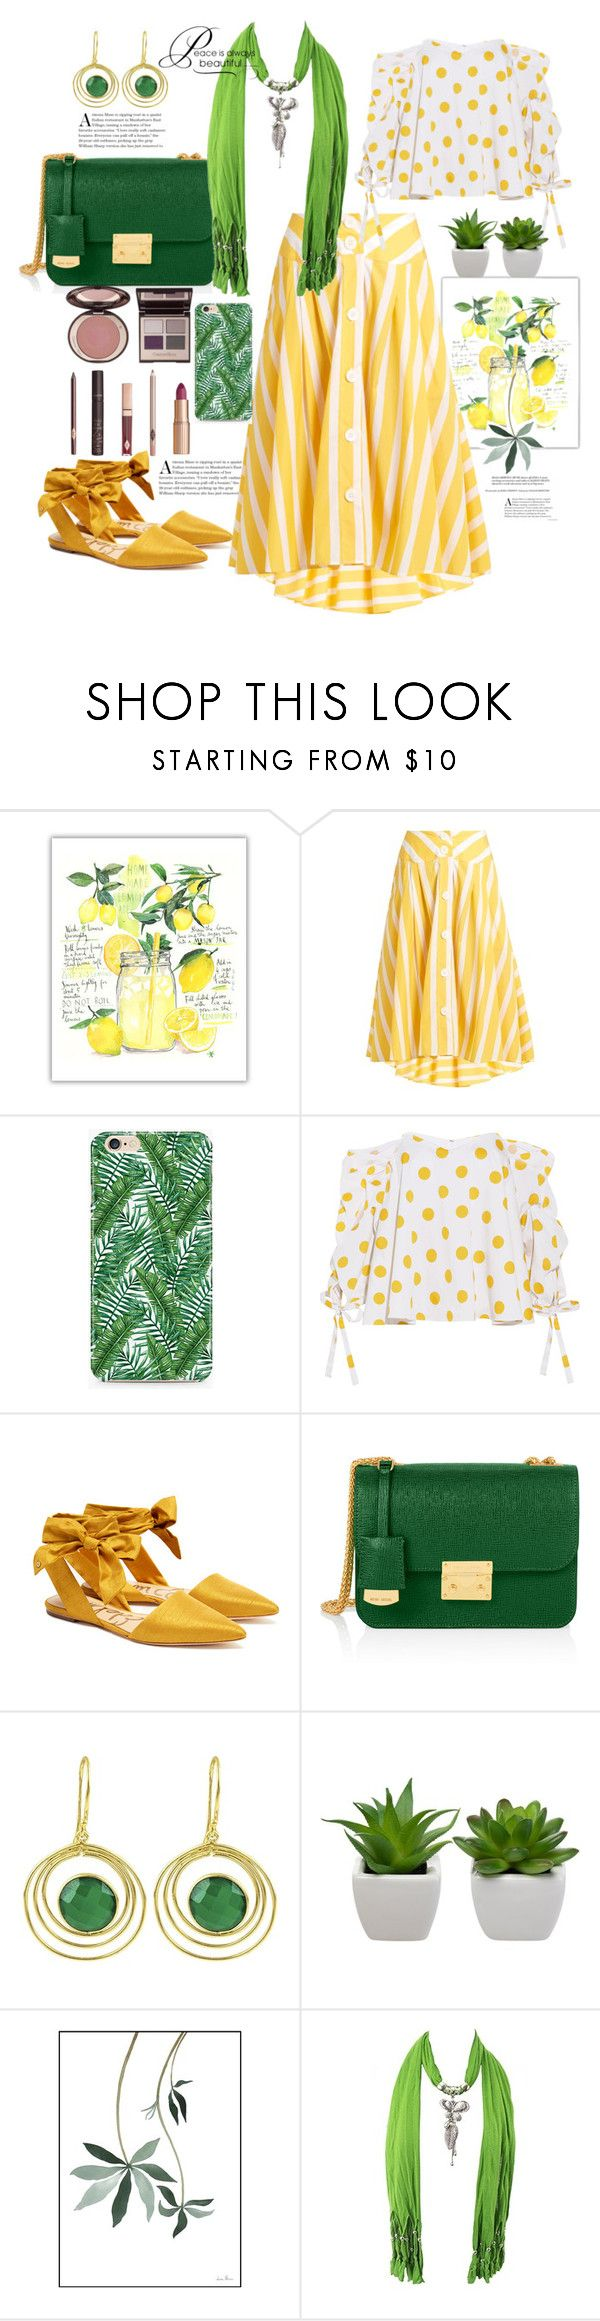 """Untitled #1094"" by csfshawn ❤ liked on Polyvore featuring Thierry Colson, Caso, Caroline Constas, Sam Edelman, Henri Bendel, Carousel Jewels, Charlotte Tilbury and WALL"